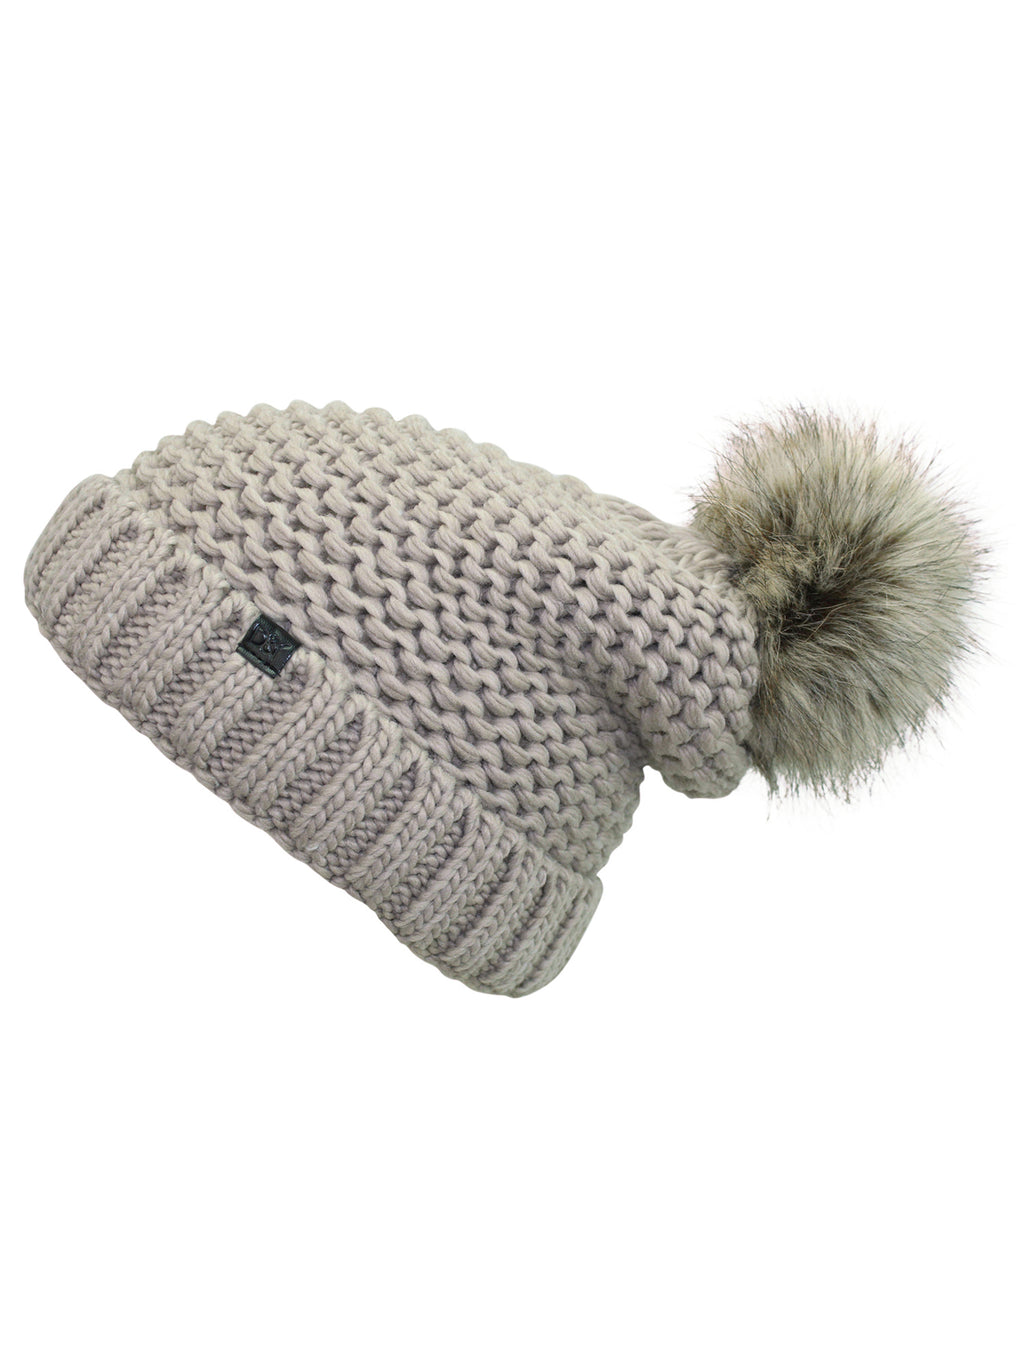 Taupe Knit Beanie Hat With Faux Fur Pom Pom